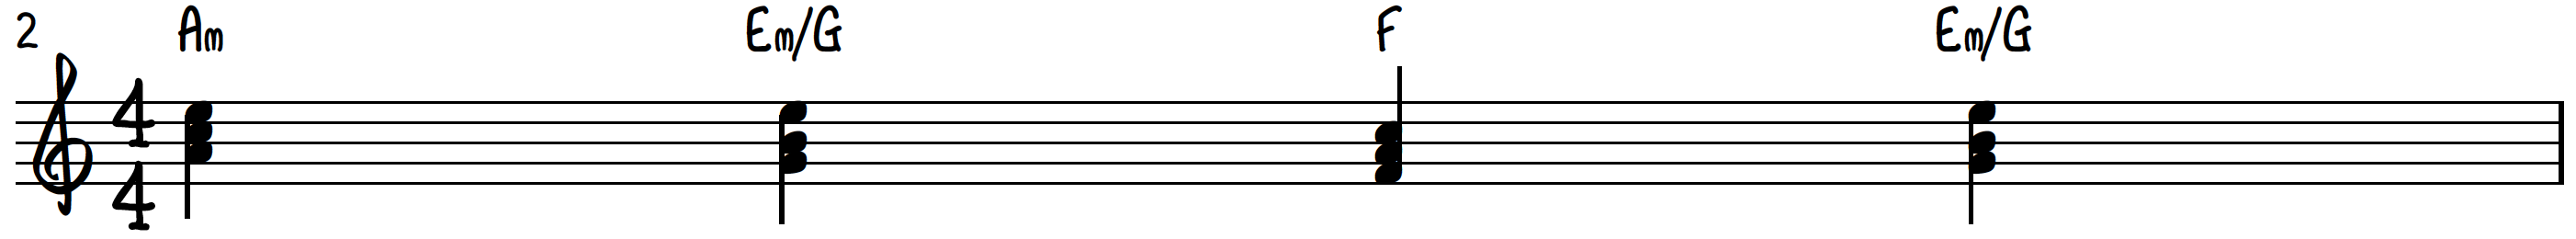 6-5-4-5 chord progression with modified 5 chord on piano